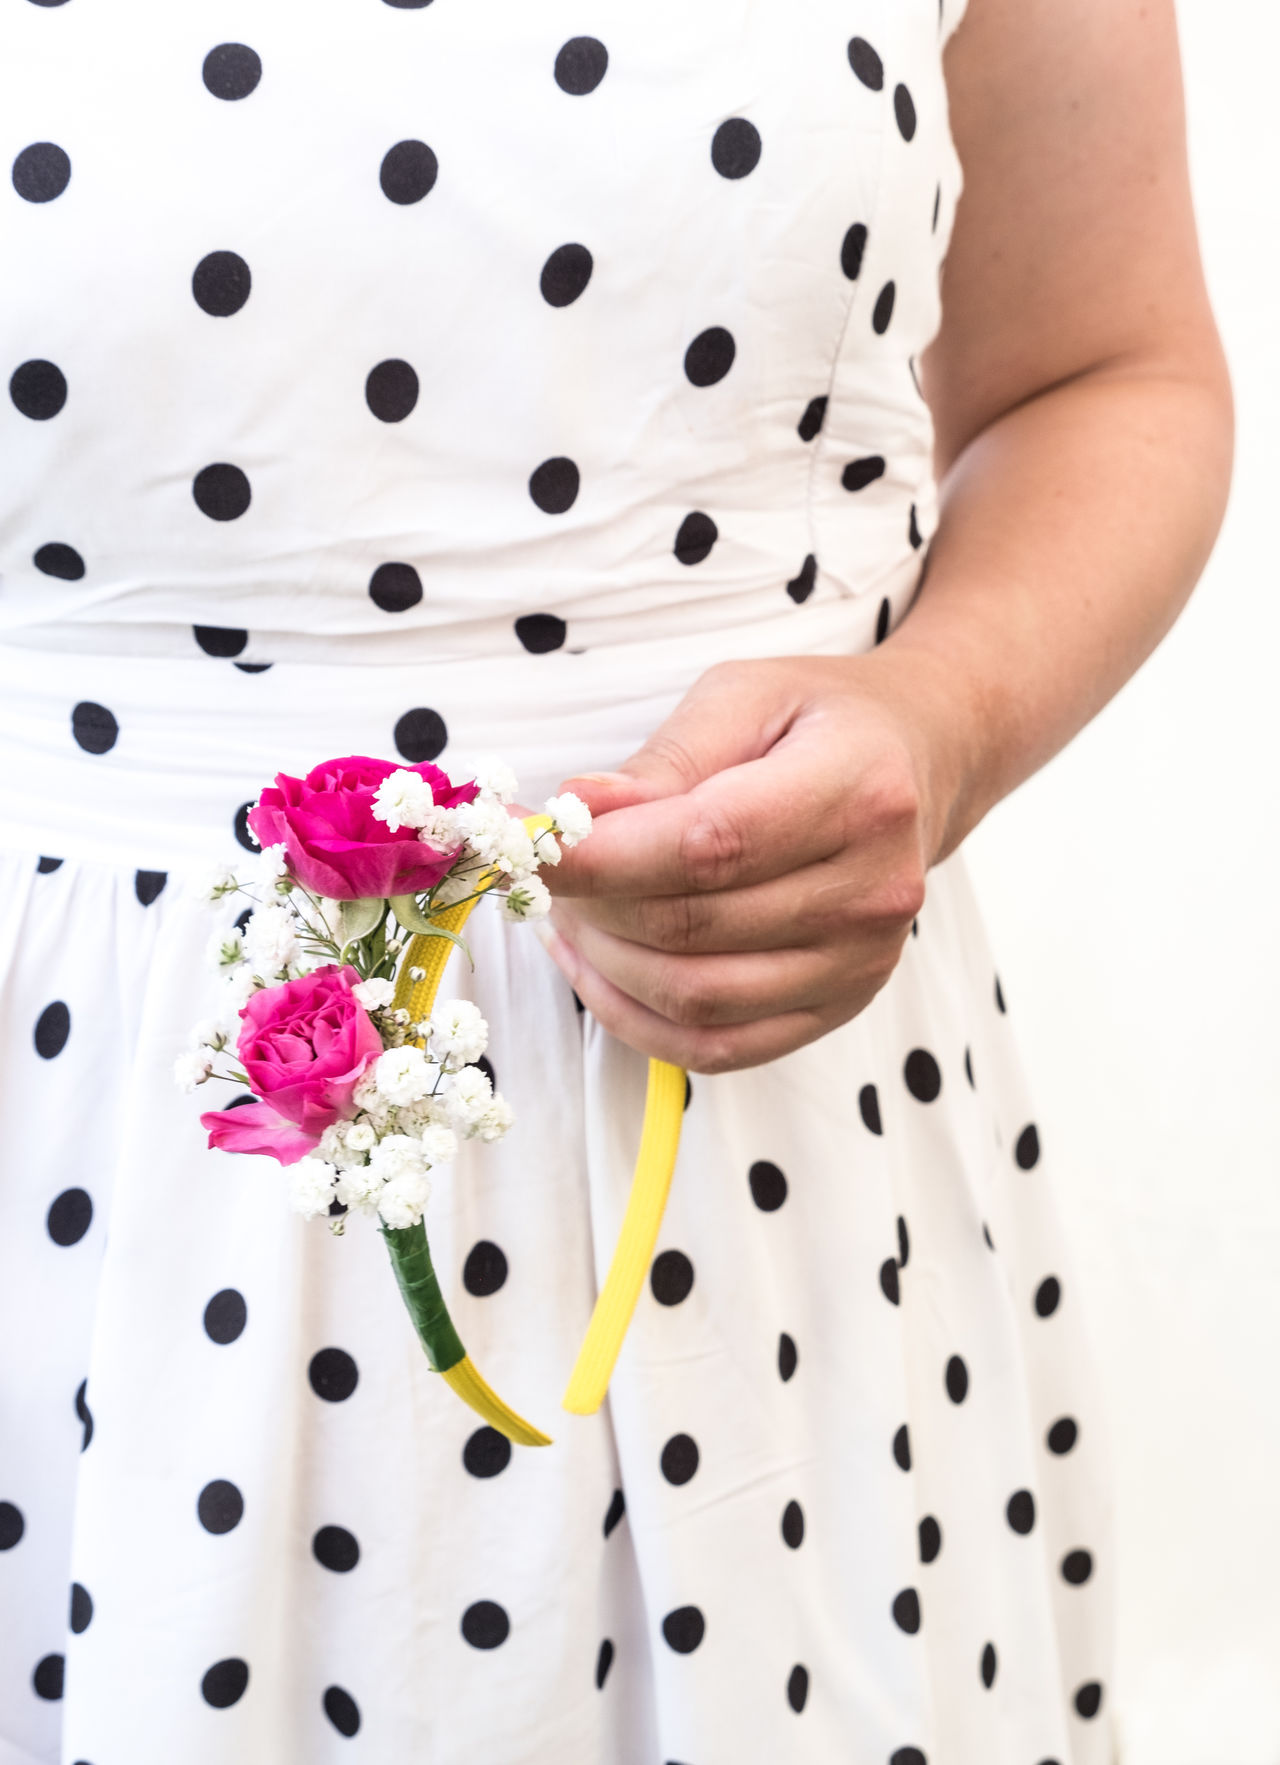 A person holding a floral headband. Carnation Dress Fashion Woman Arm Close-up Fleur Fleur Headband Floral Flowers Hand Headband Holding Human Hand Midsection One Person Pink Flowers Polka Dot Standing Vintage Dress